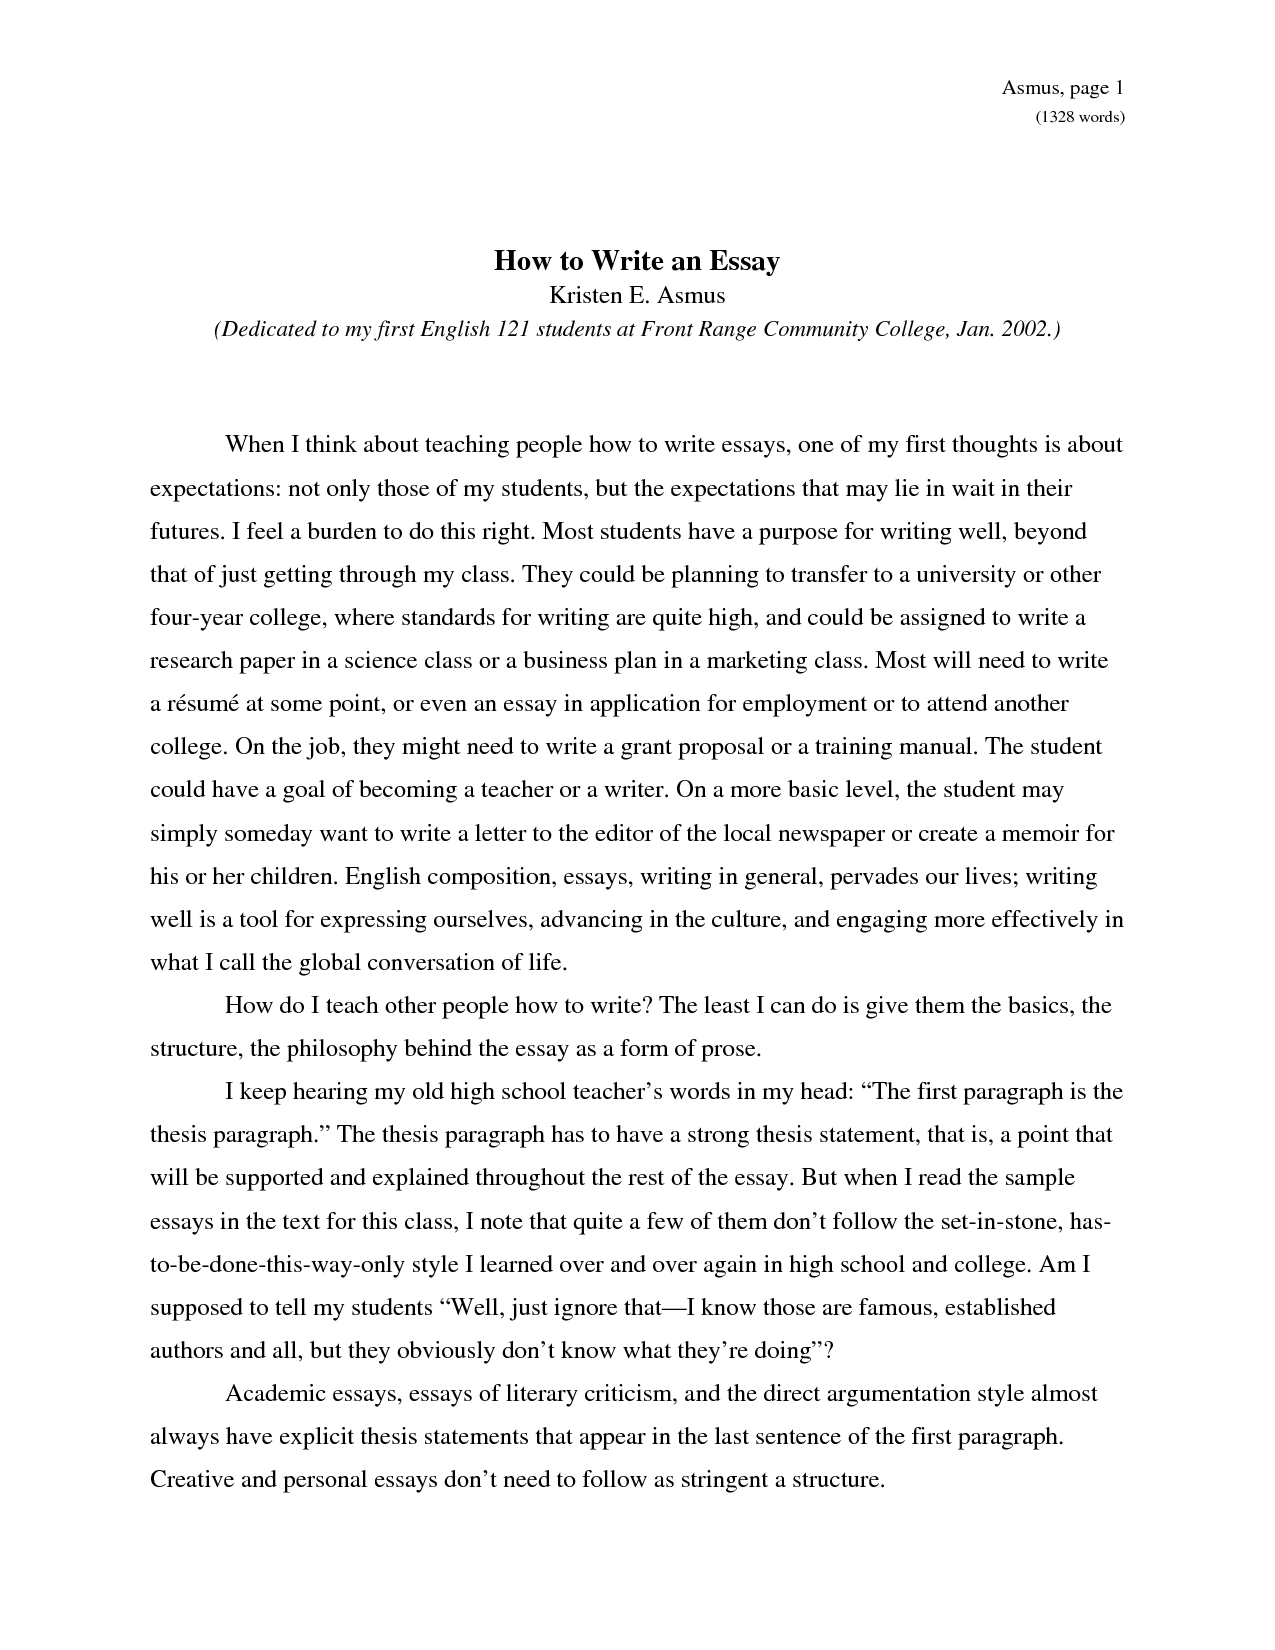 If essay writing is mission impossible for your children and you really want to teach them how to write, you should work on your own skills first.You need an organized and methodical approach that will make it easy for them to understand what you are trying to say.